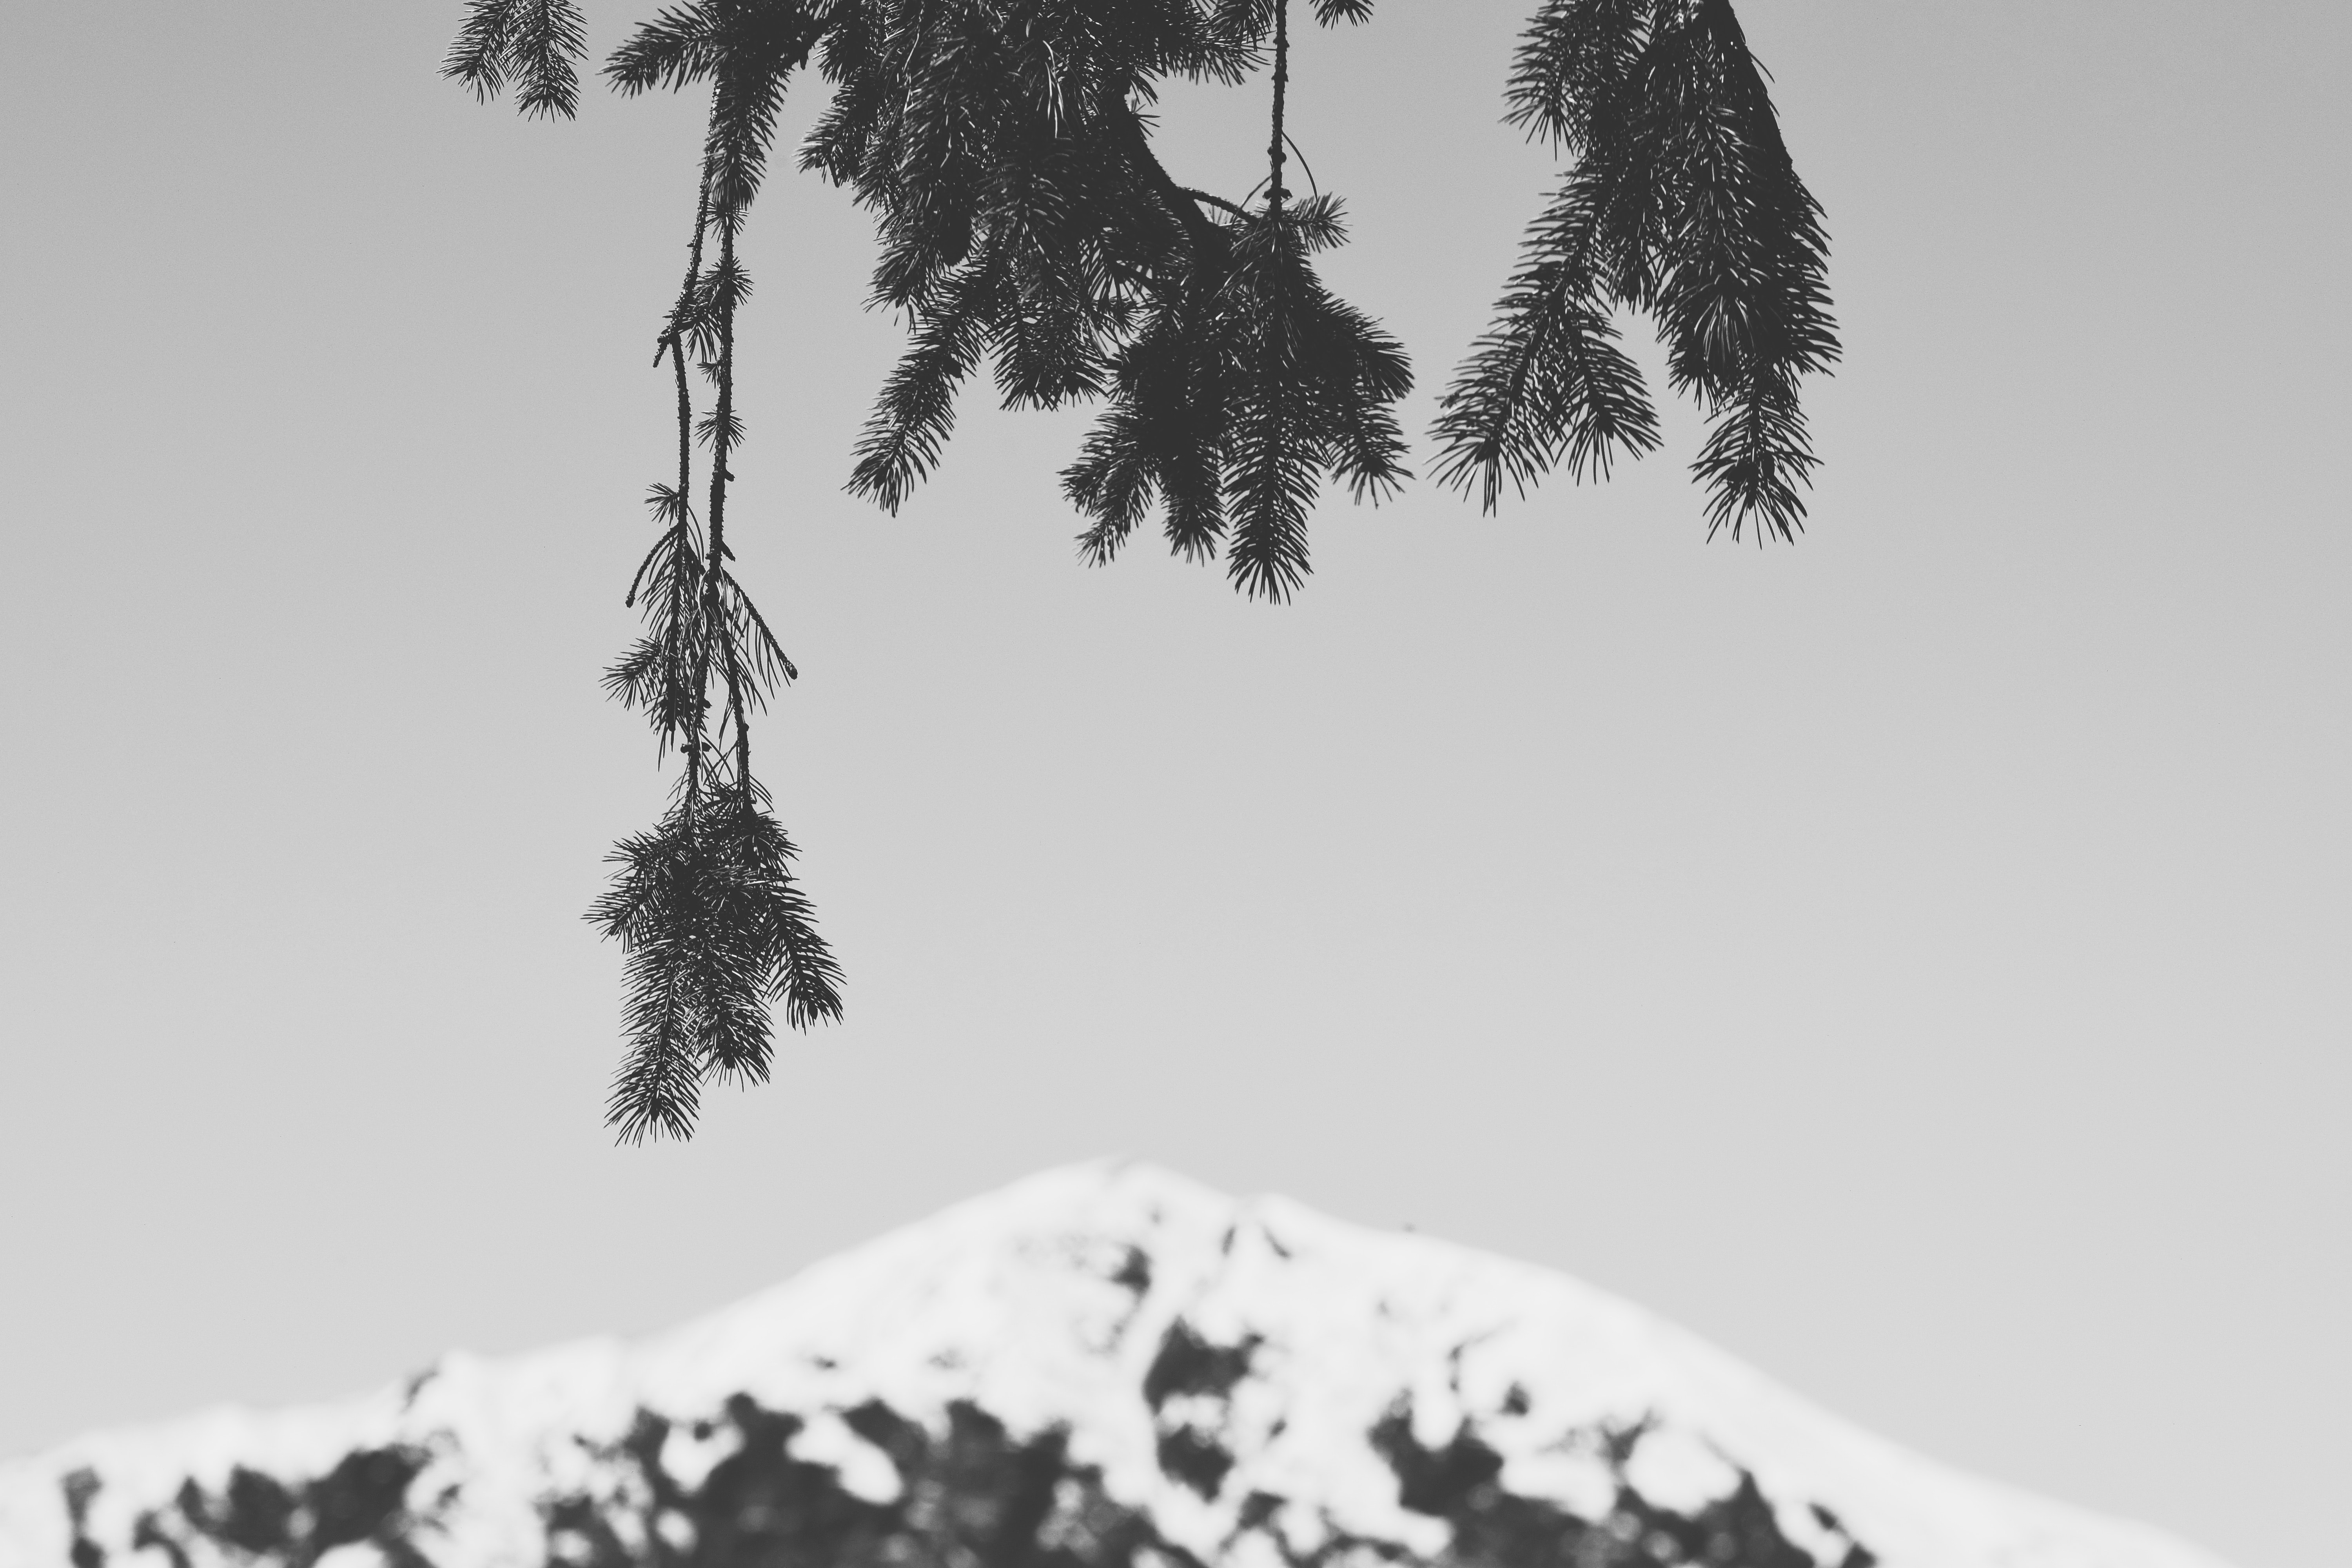 Pine needle branches dangle in front of a mountain with snow on top